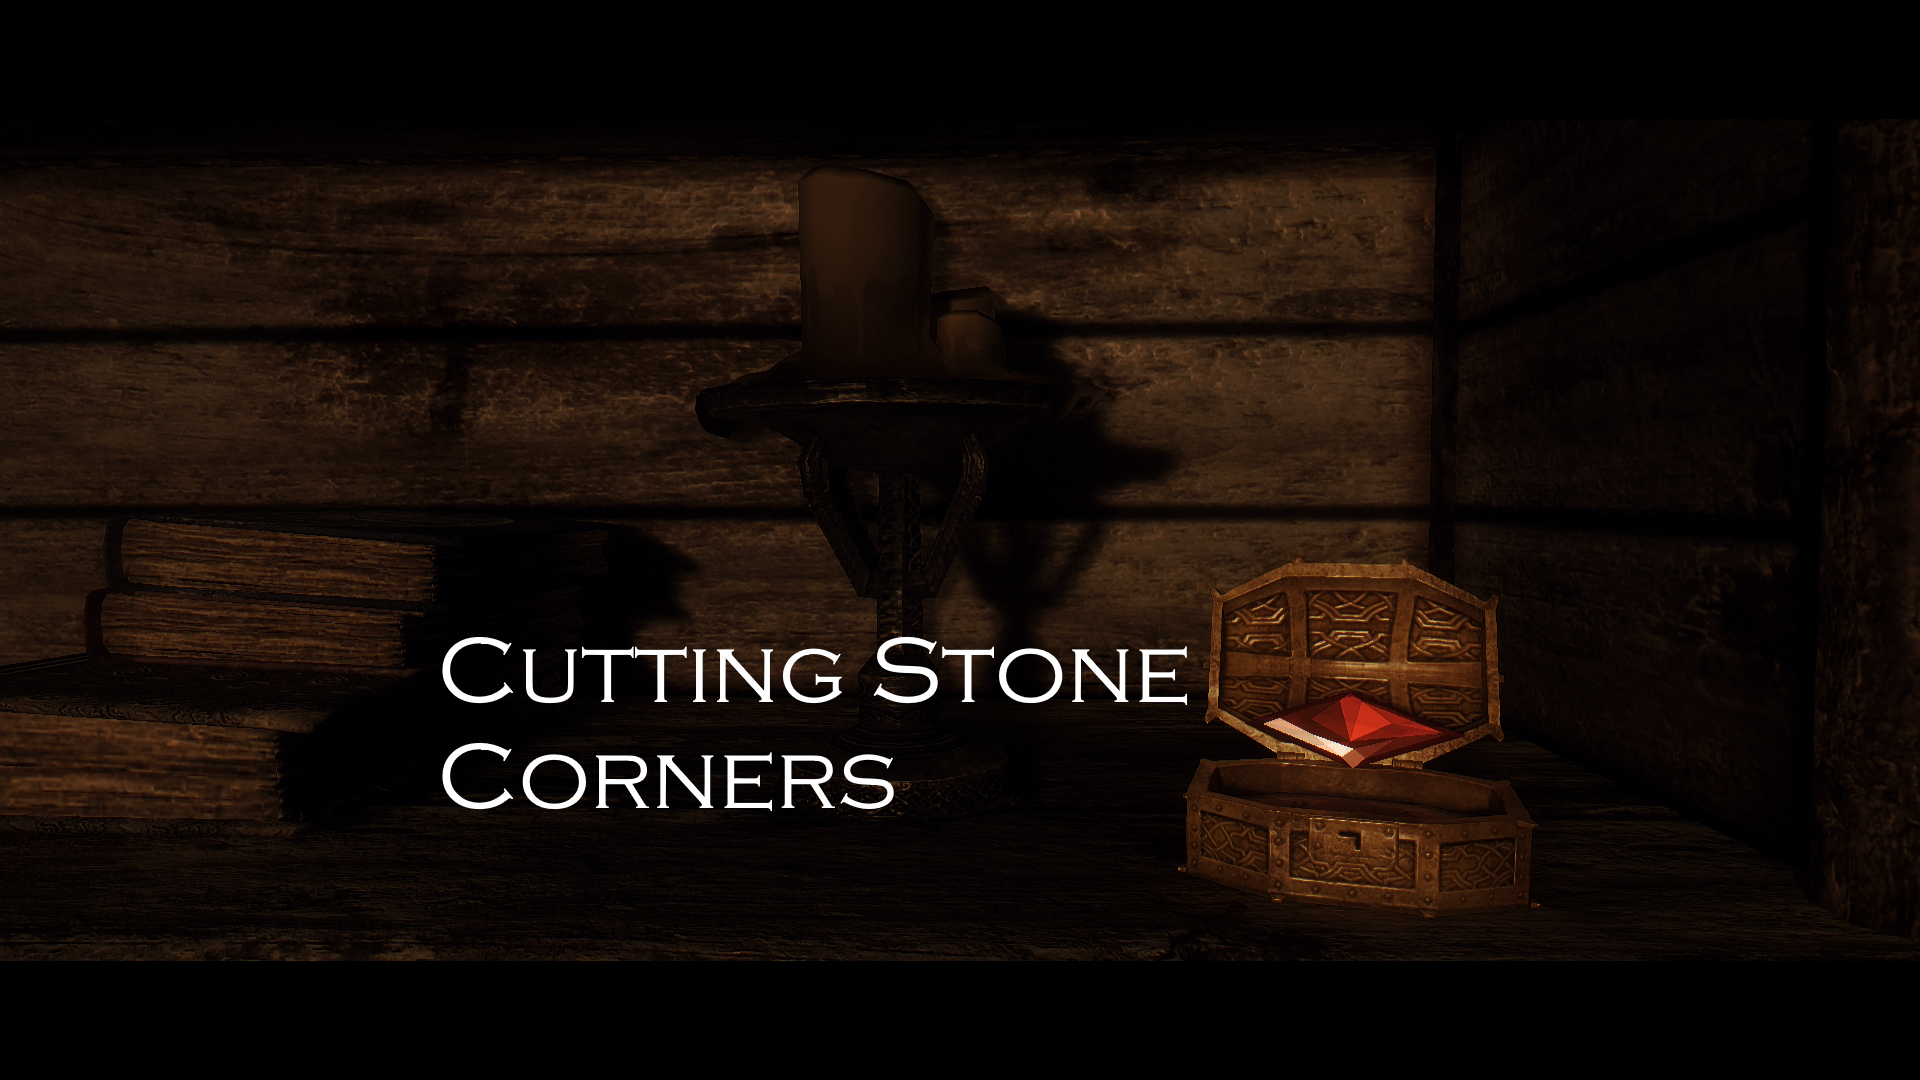 Cutting Stone Corners 挖角